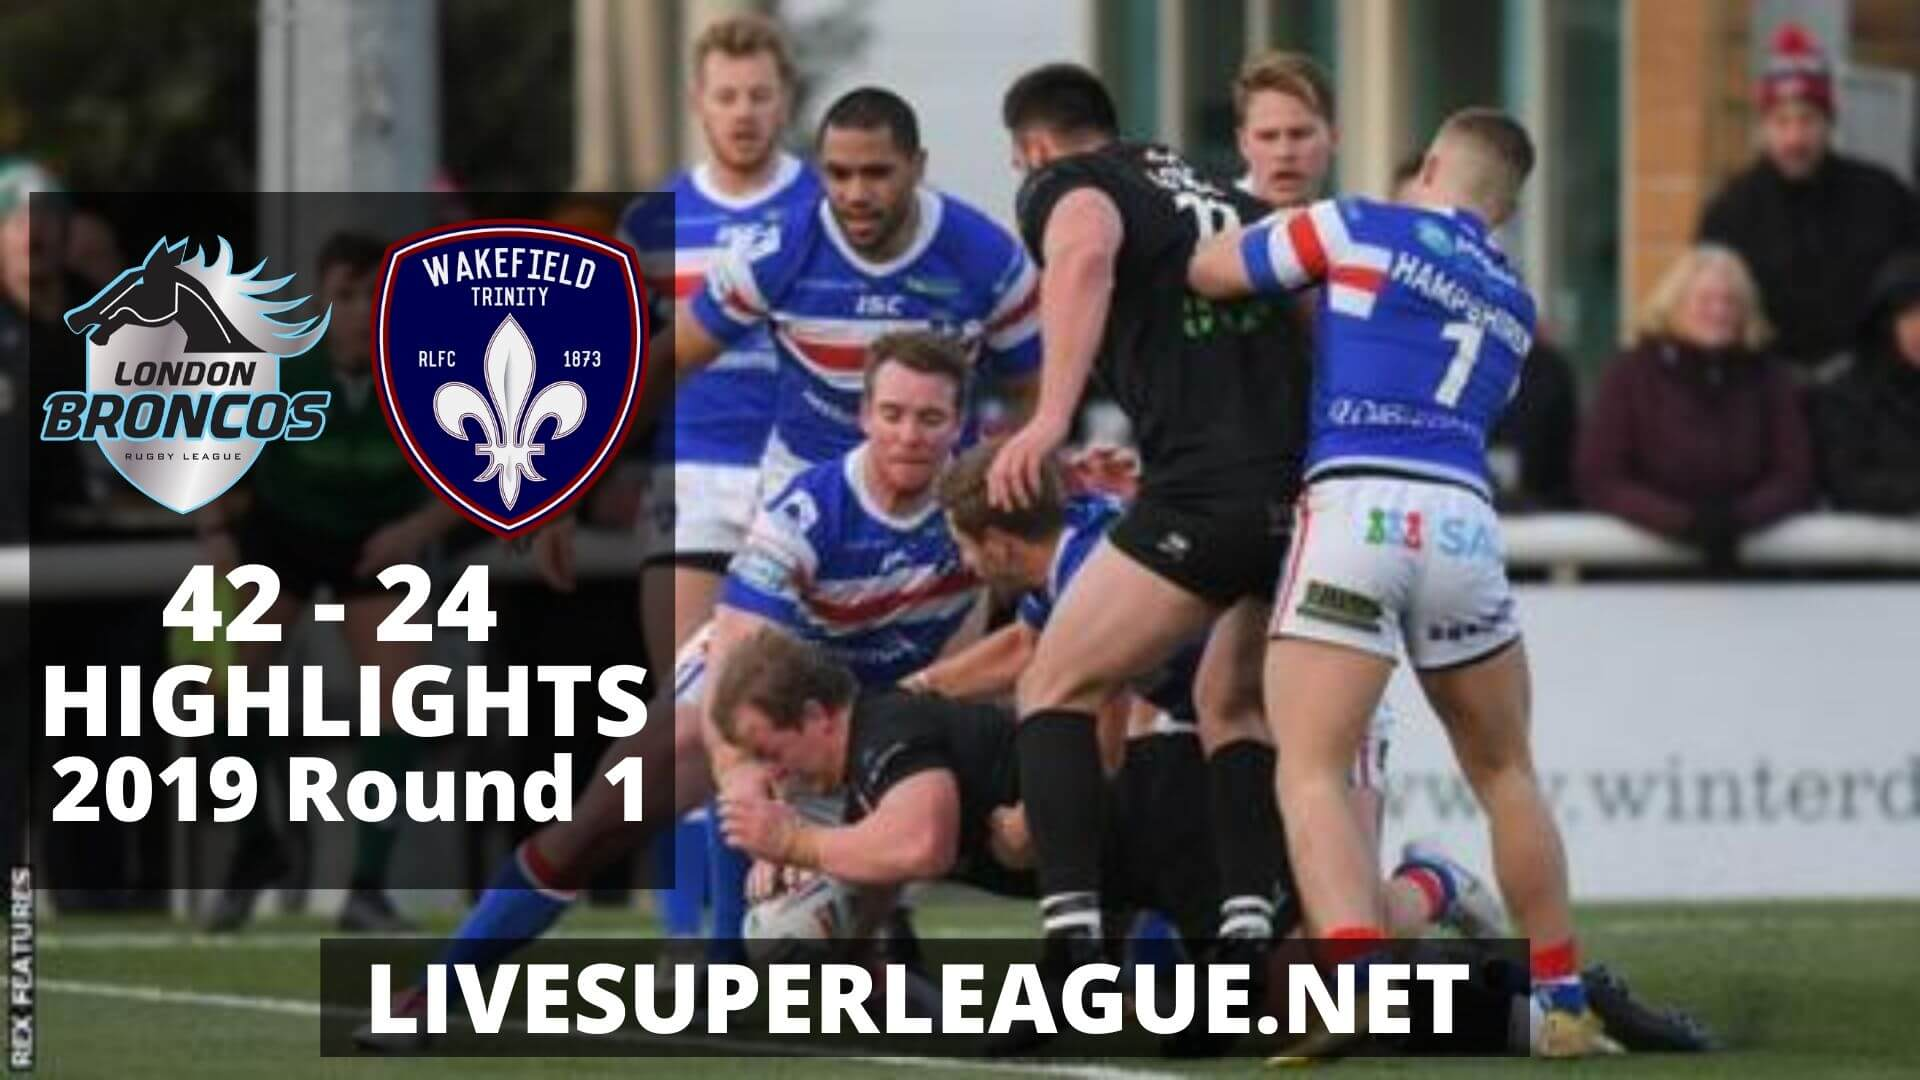 London Broncos Vs Wakefield Trinity Highlights 2019 Round 1